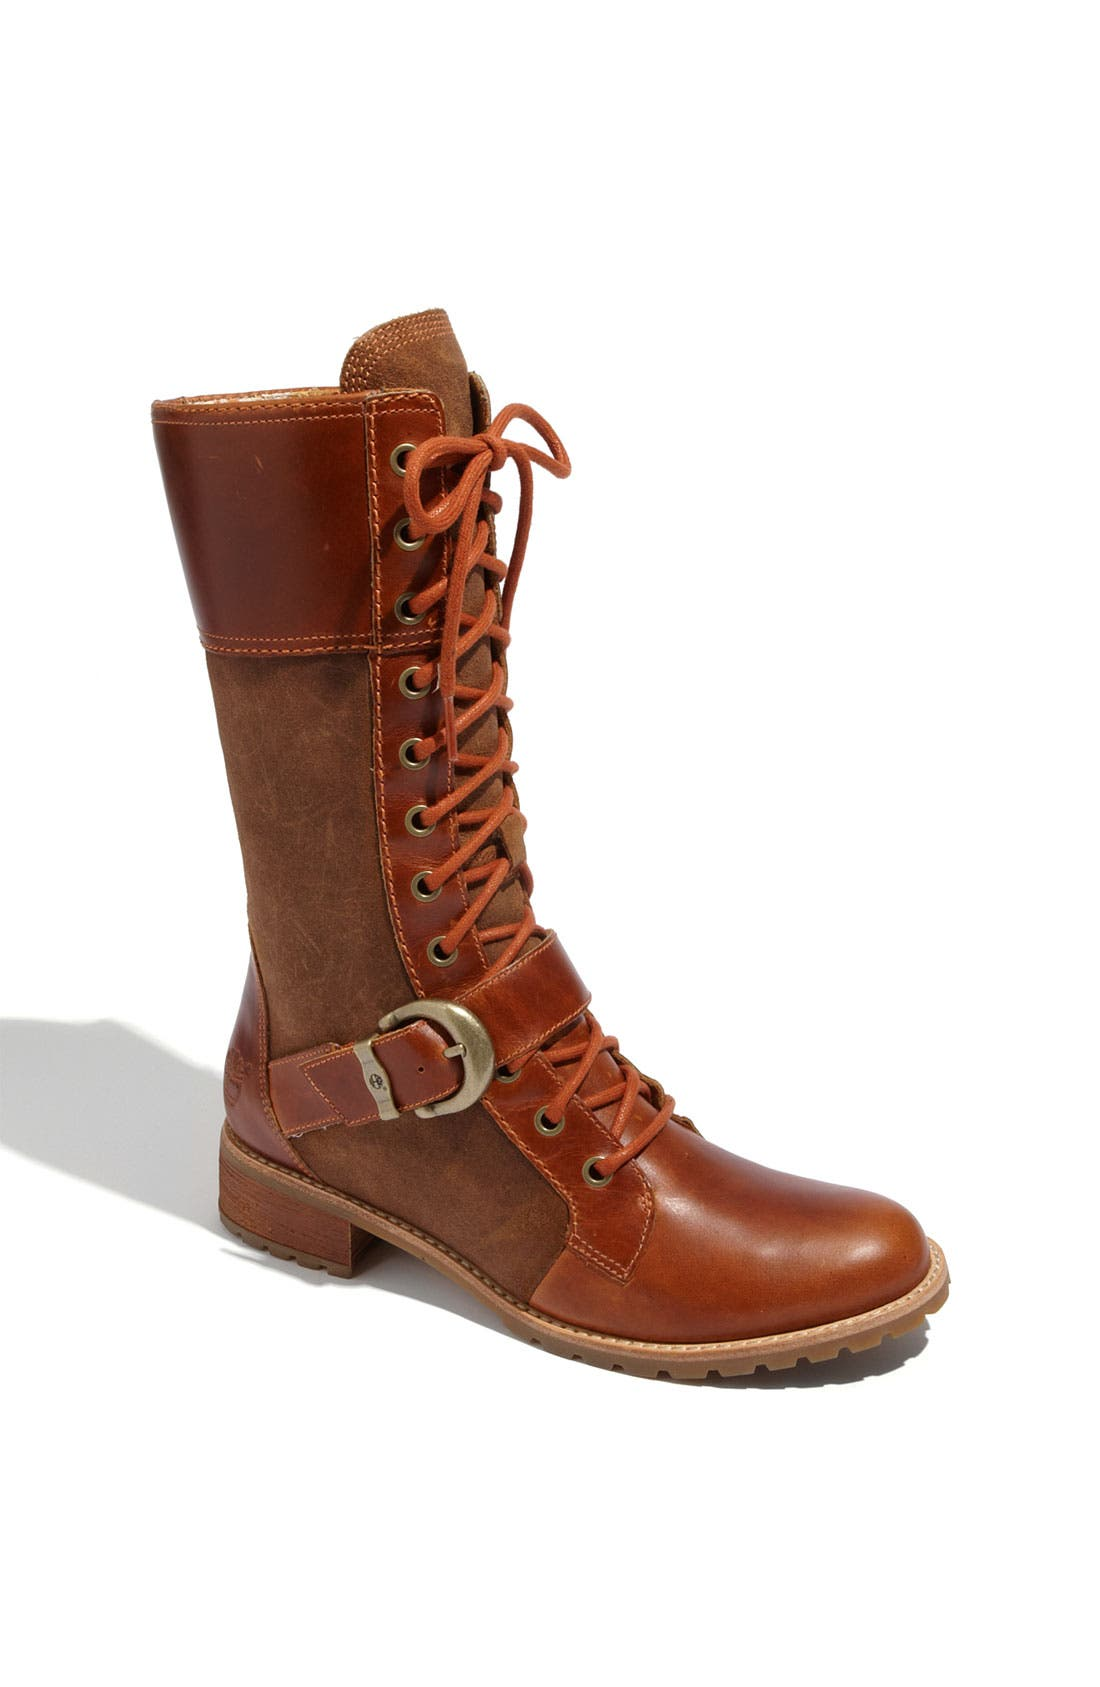 Alternate Image 1 Selected - TIMBERLAND EARTHKEEPER BETHEL BUCKLE MID LACE BOOT